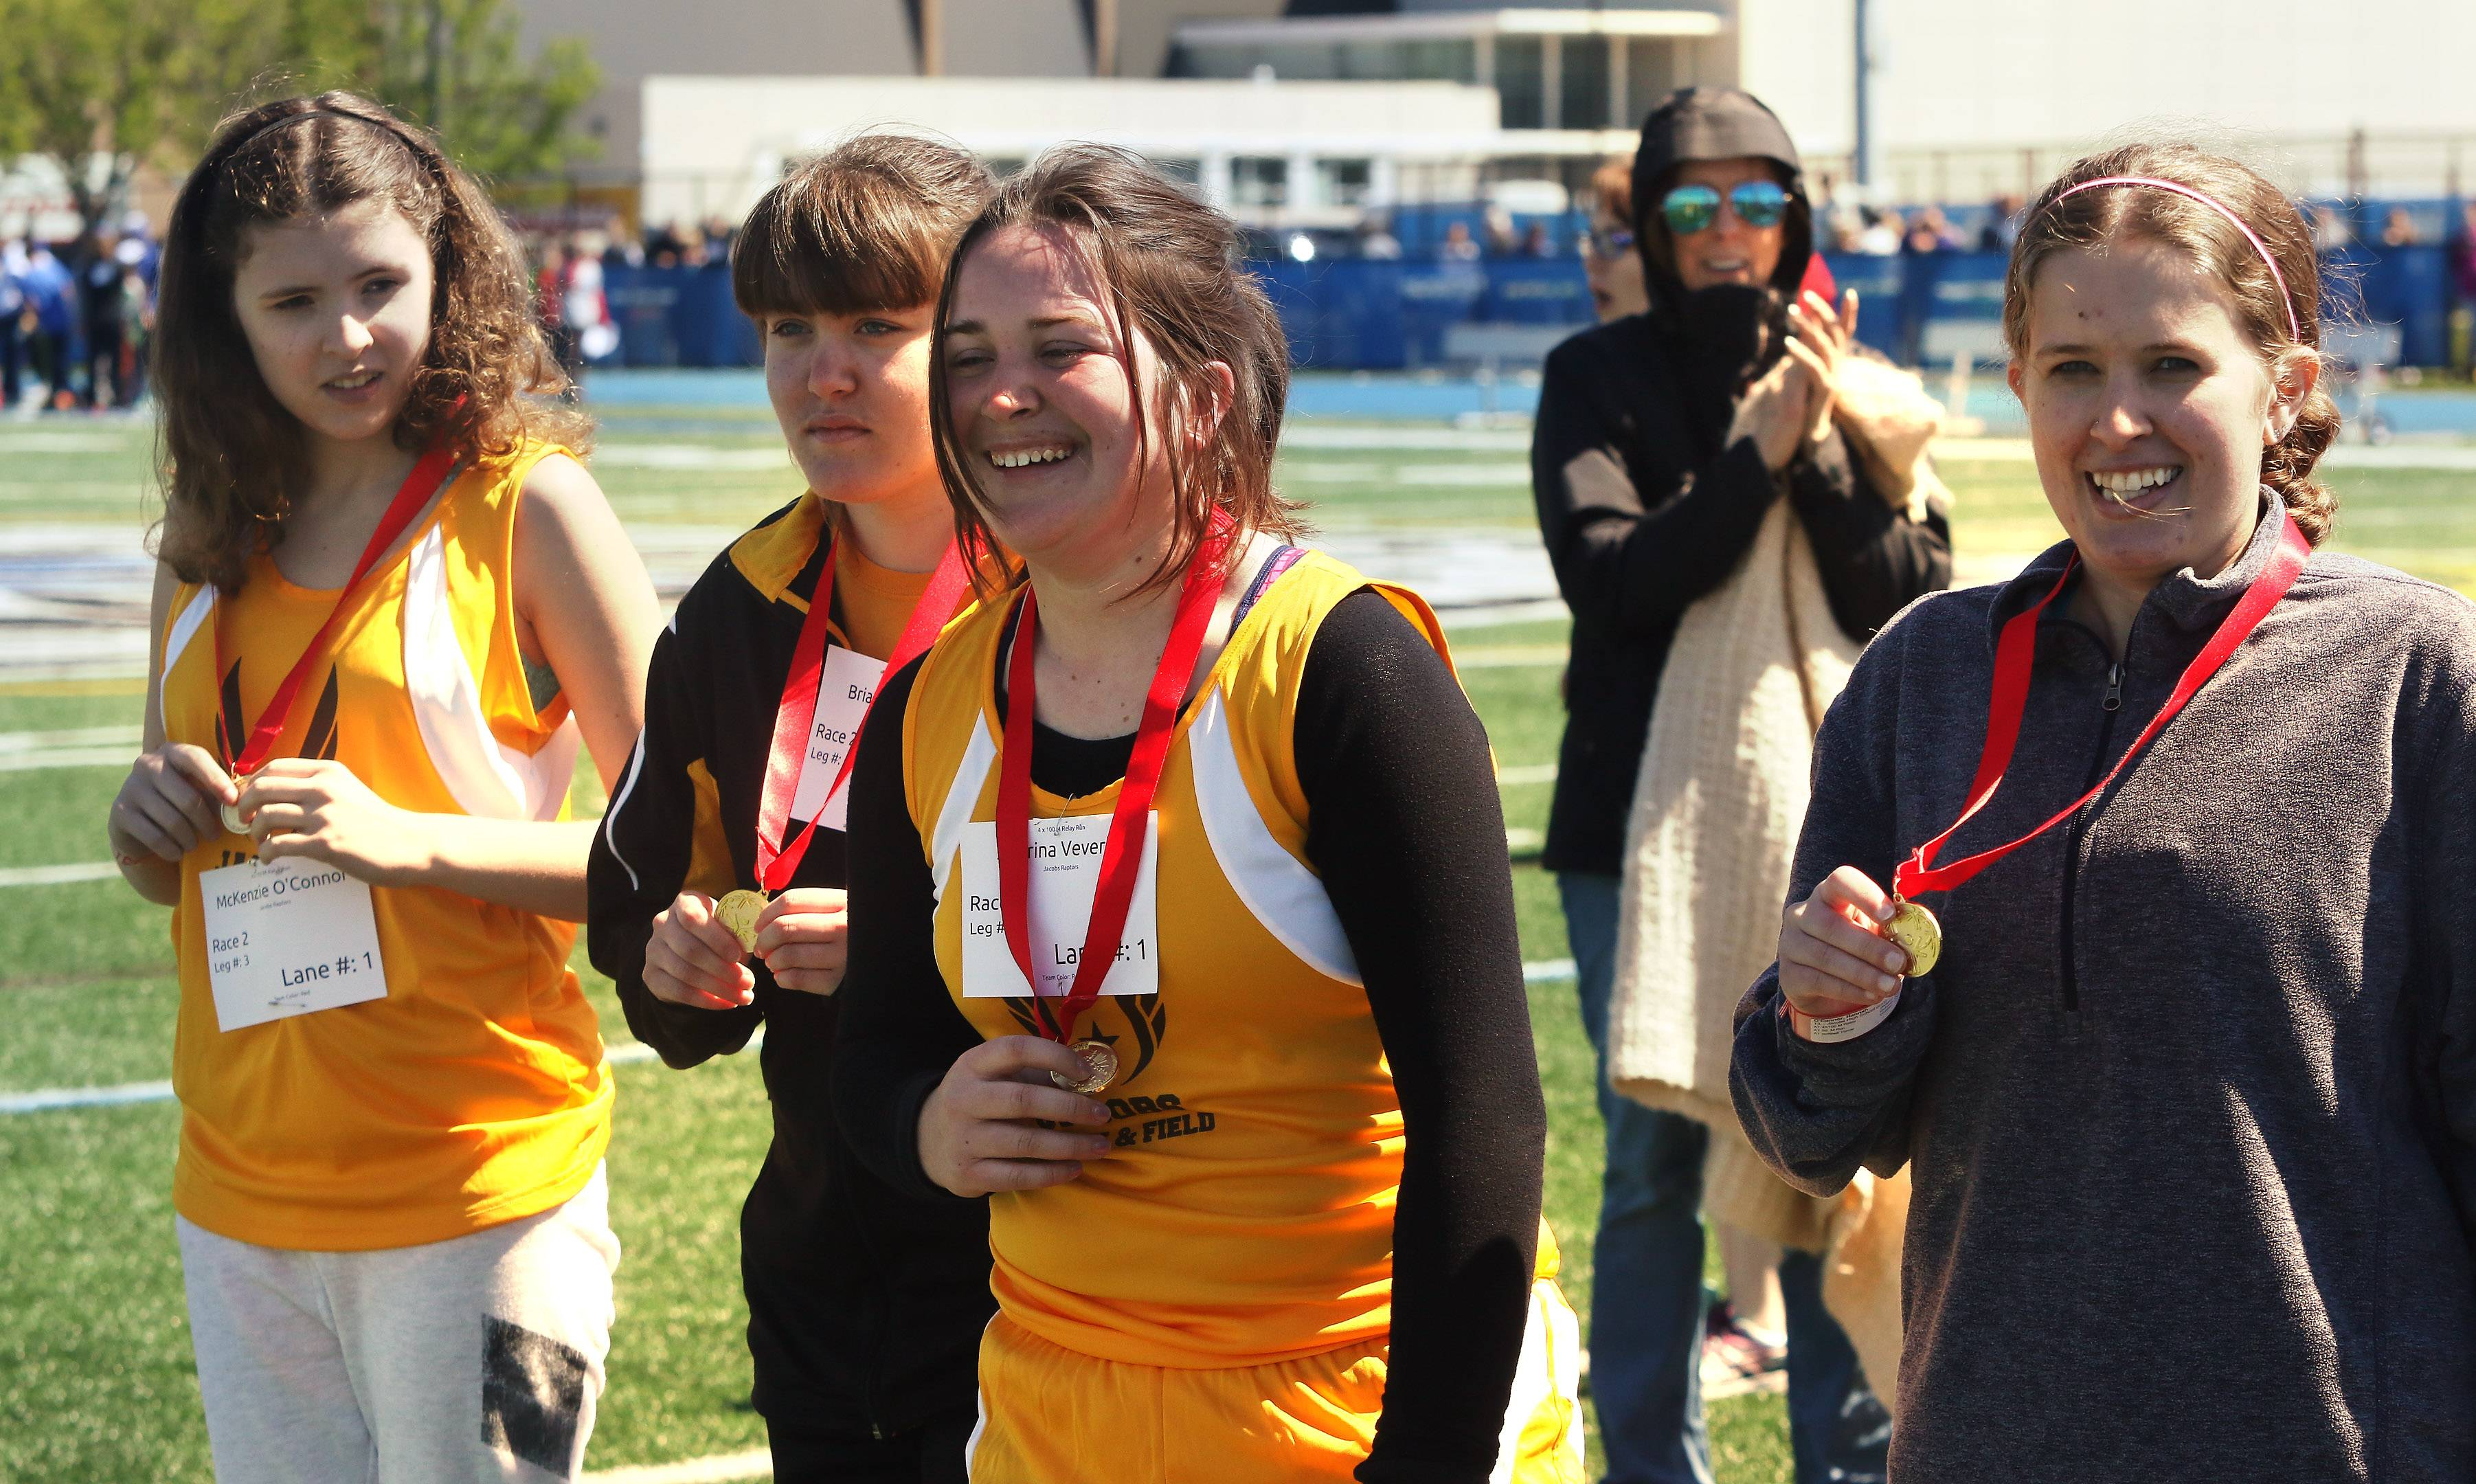 Jacobs High School's McKenzie O'Connor, from left, Briana Edwards, Sabrina Veverka and Hannah O'Connor show off their relay medals Sunday during Special Olympics Illinois Northeastern/Area 13 at Lake Zurich High School.